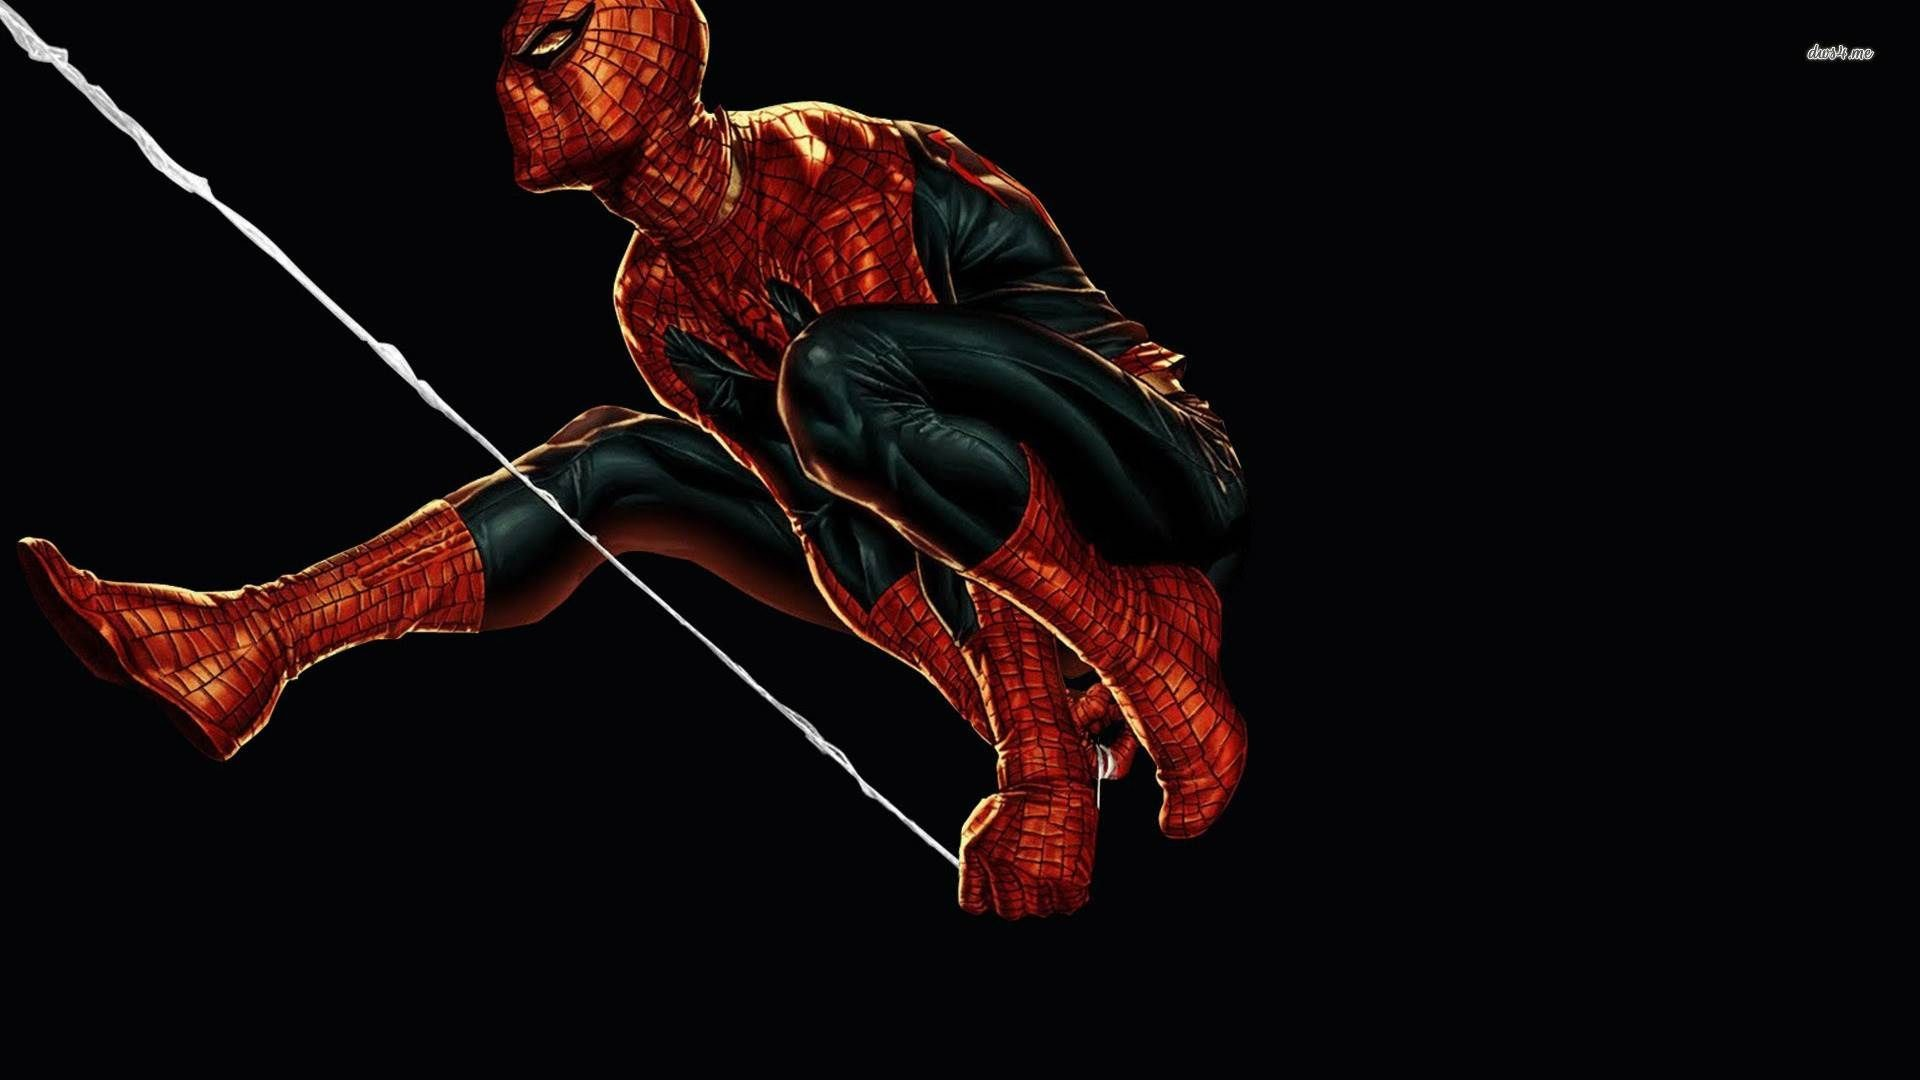 2500x1406 Spiderman HD Wallpapers Desktop Pics For PC Mac Laptop Tablet Mobile Phone